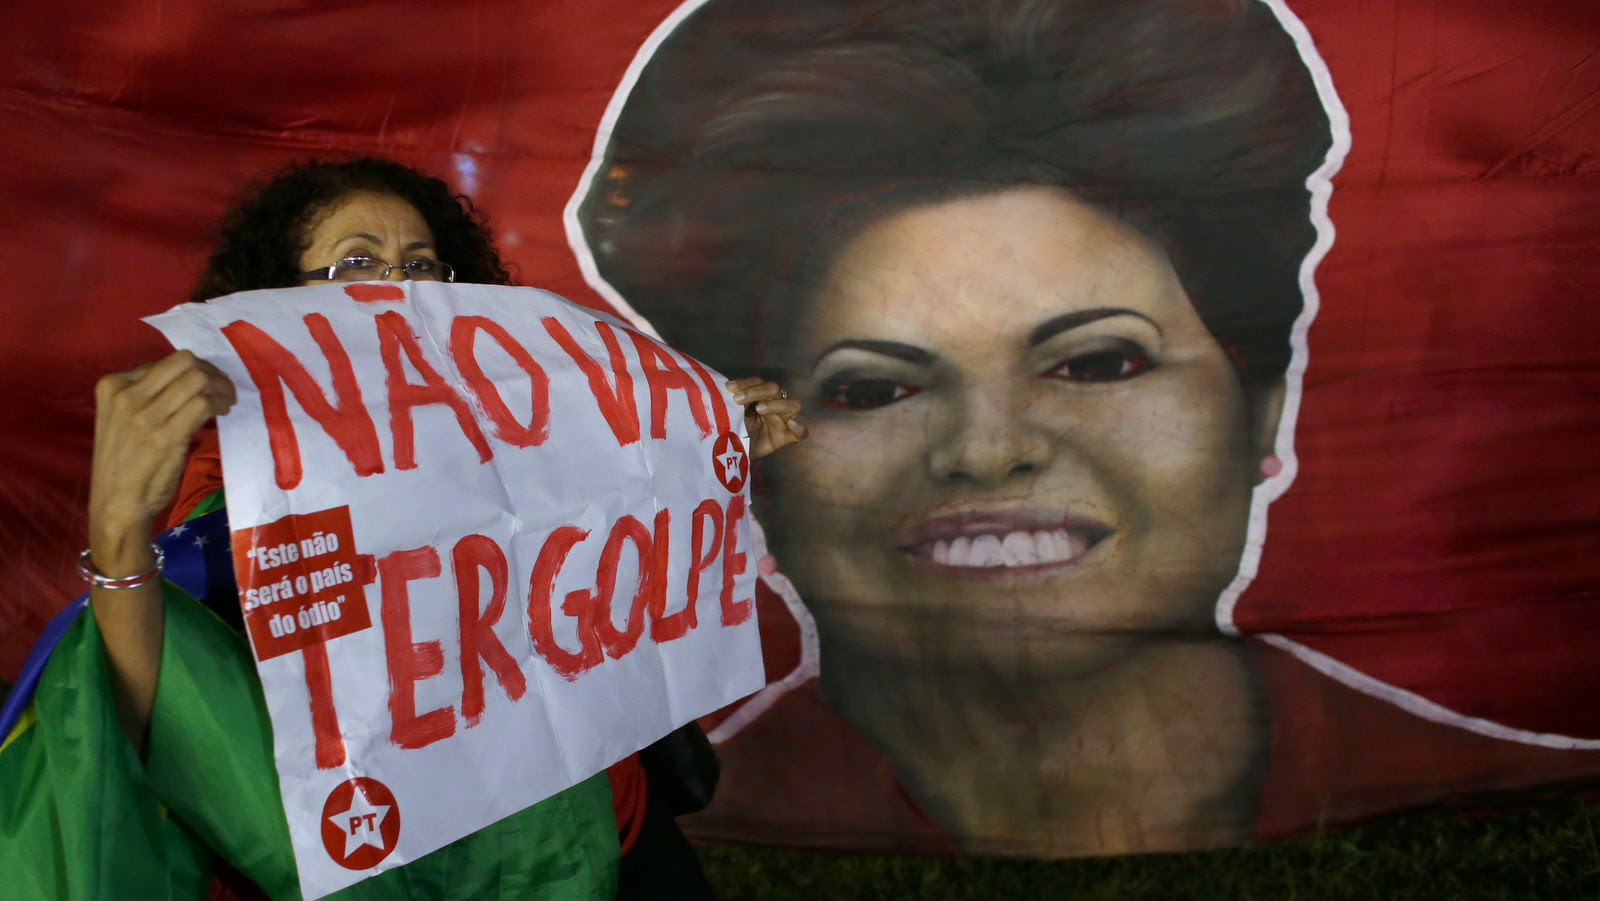 Woman shows poster written in Portuguese